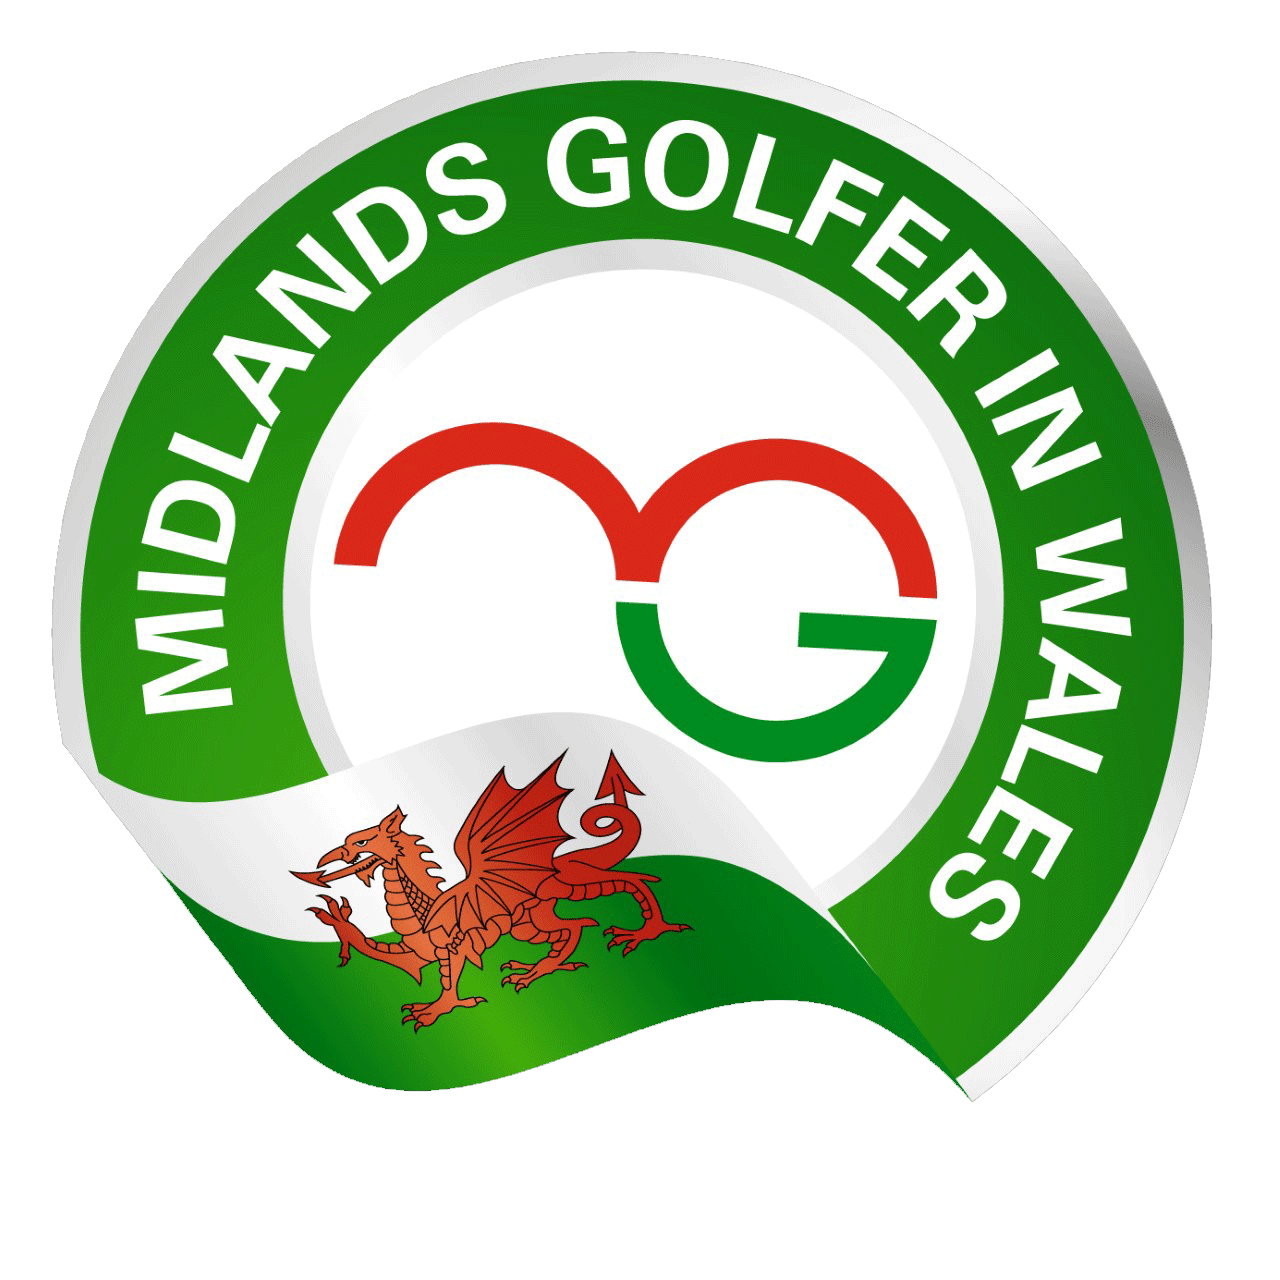 Midlands Golfer in Wales logo